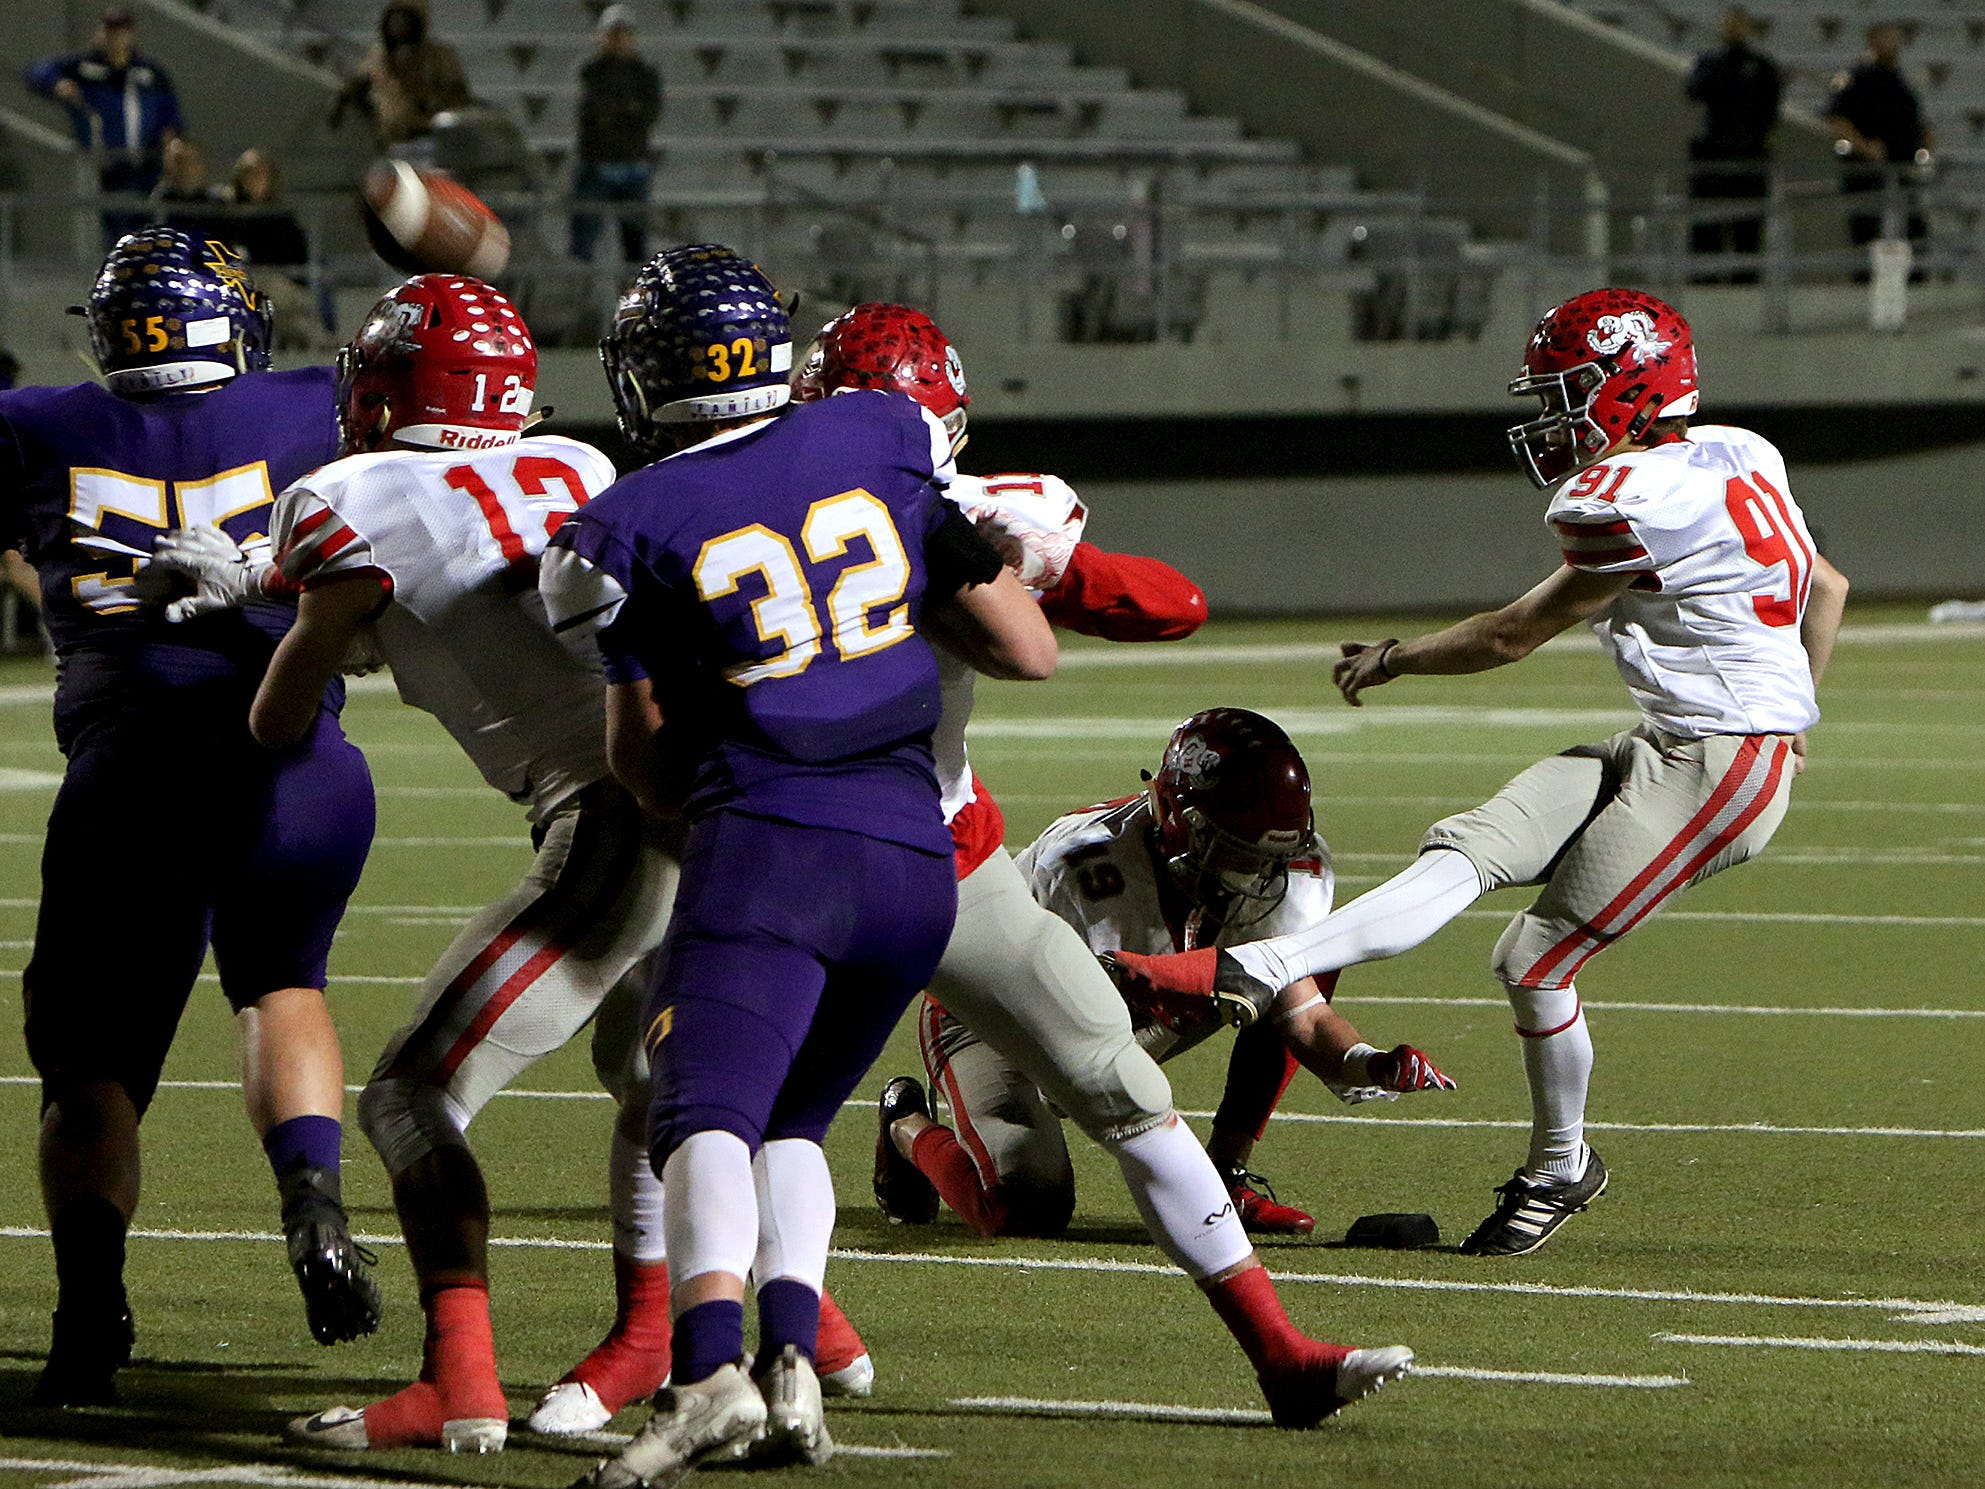 Holliday's Grayson Germany (91) makes a field goal near the end of the first half against Buffalo on Friday, Nov. 30, 2018, in the Region II-3A Div. II regional game at Birdville ISD Athletics Complex in North Richland Hills.